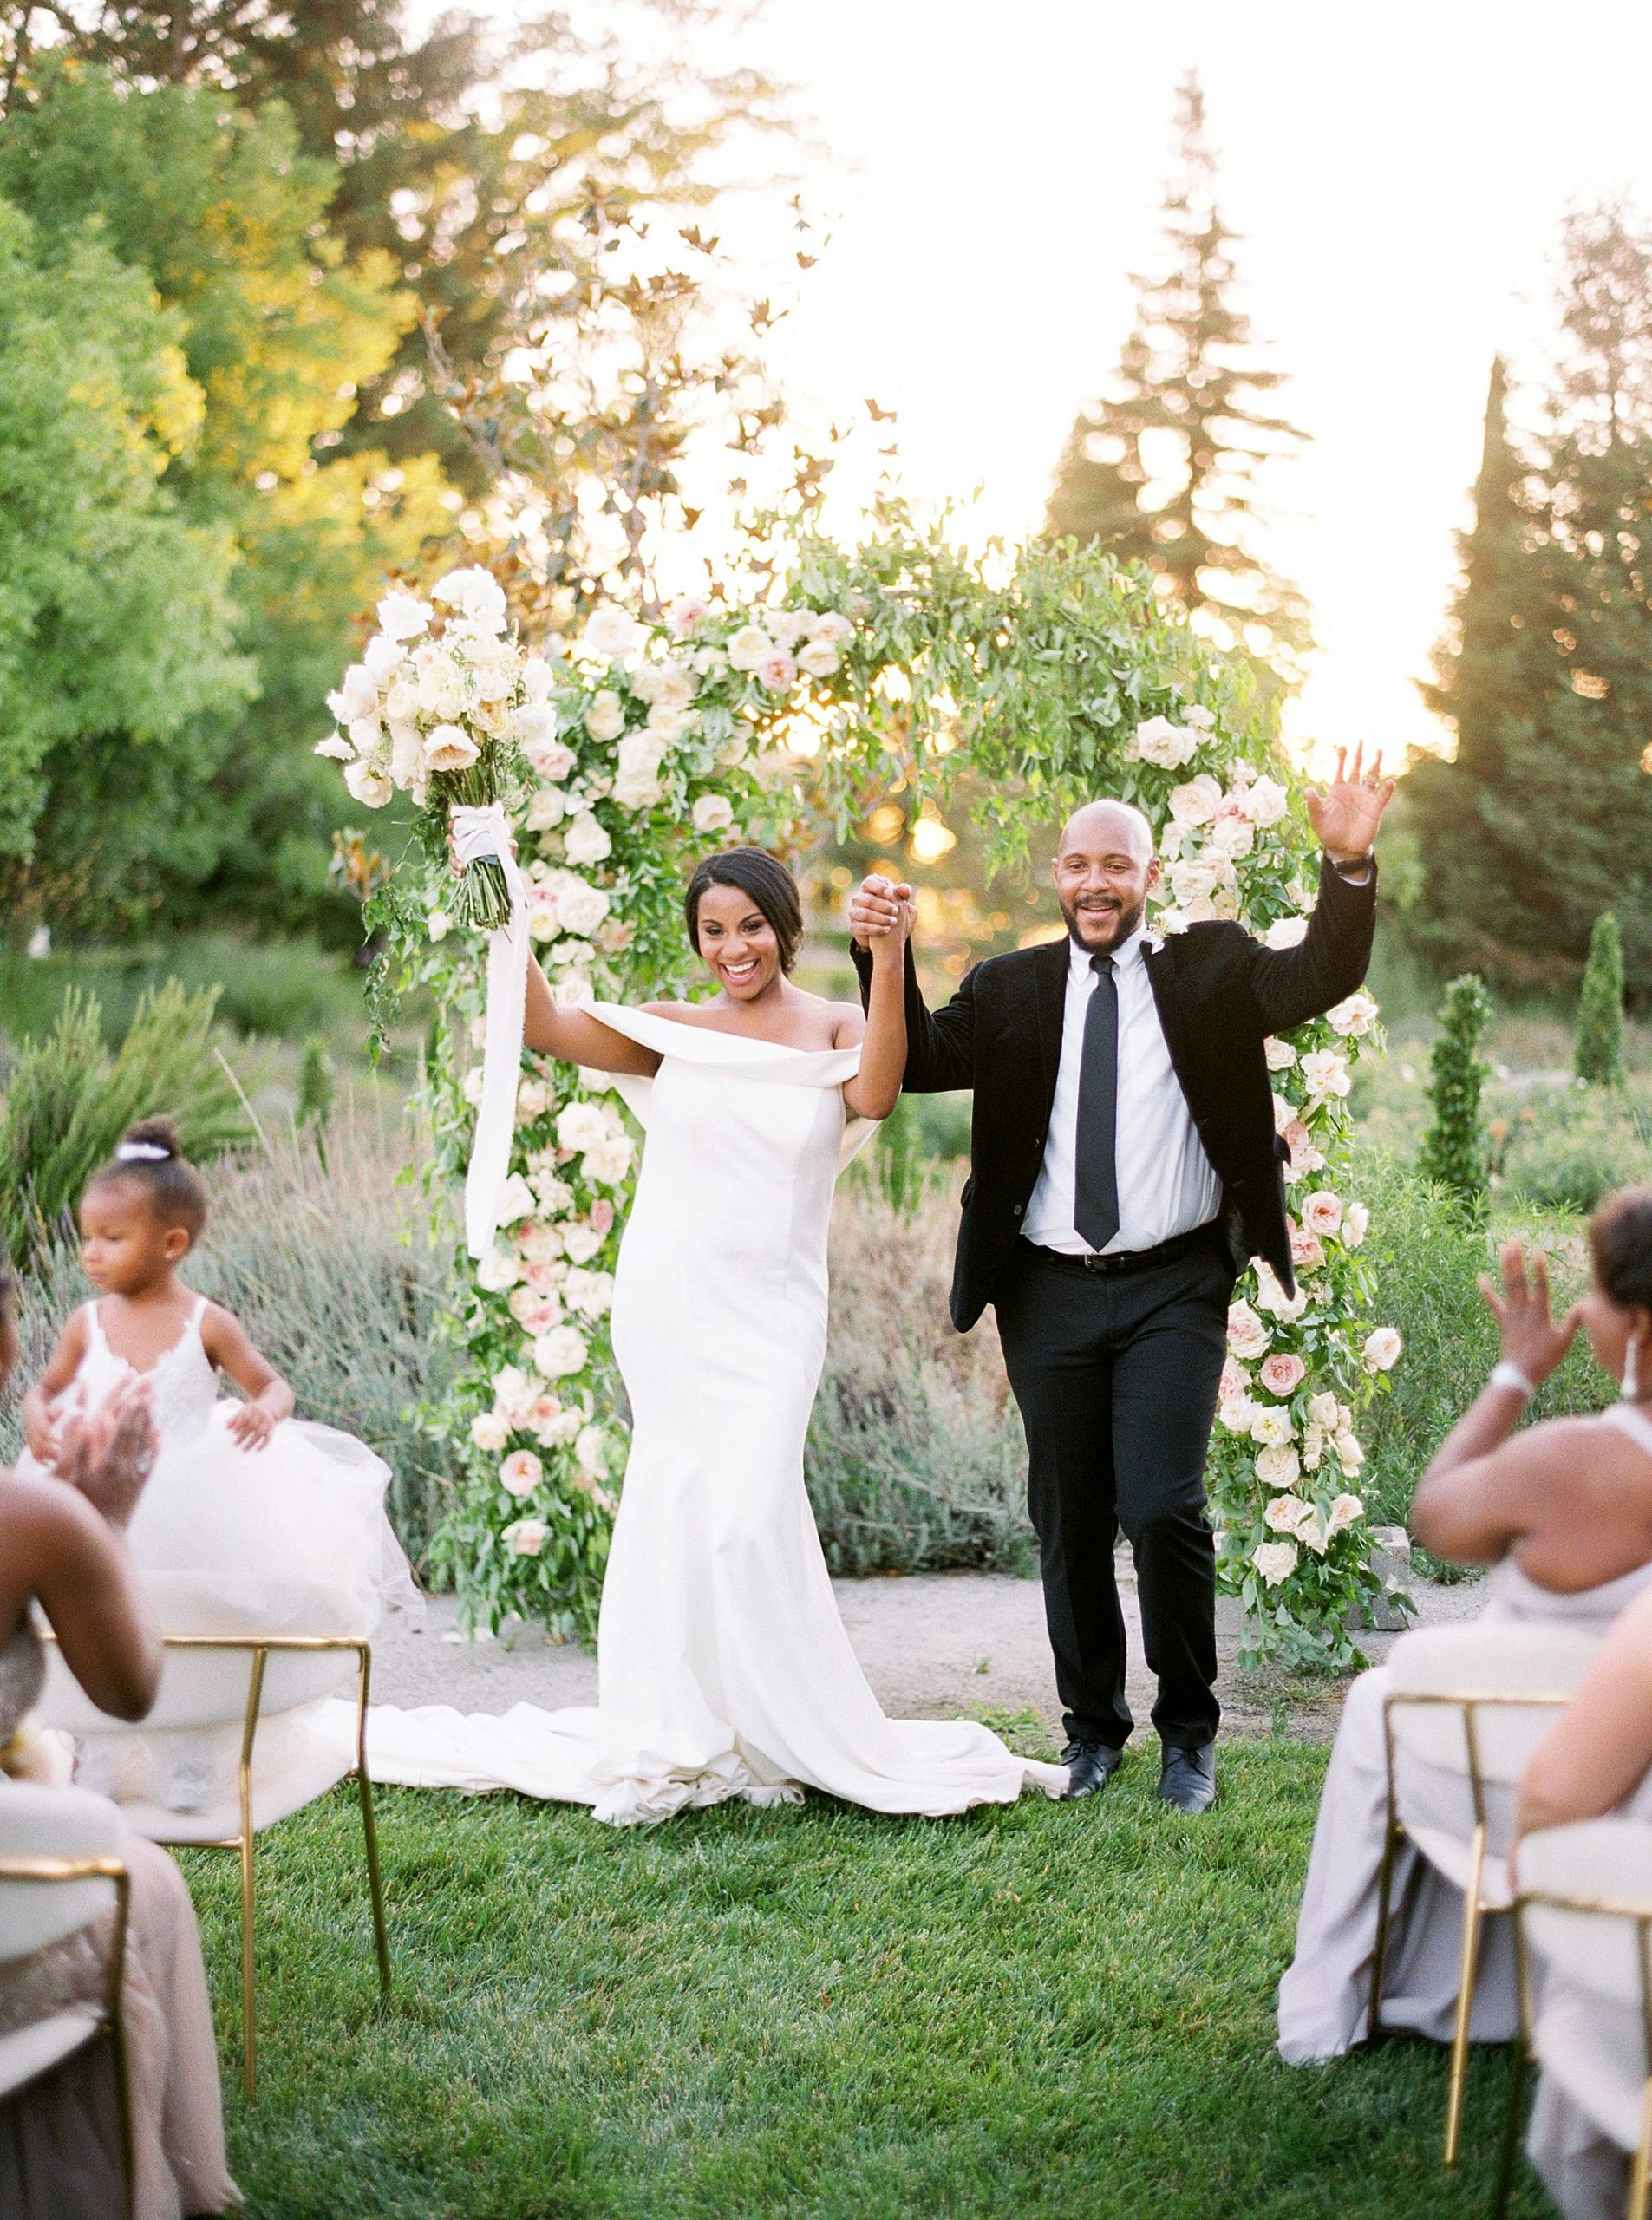 Park Winters Micro-Wedding Inspiration on Style Me Pretty - Stephanie Teague Events - Ashley Baumgartner - Park Winters Wedding - Black Tie Wedding - Micro-Wedding Sacramento Photographer_0030.jpg